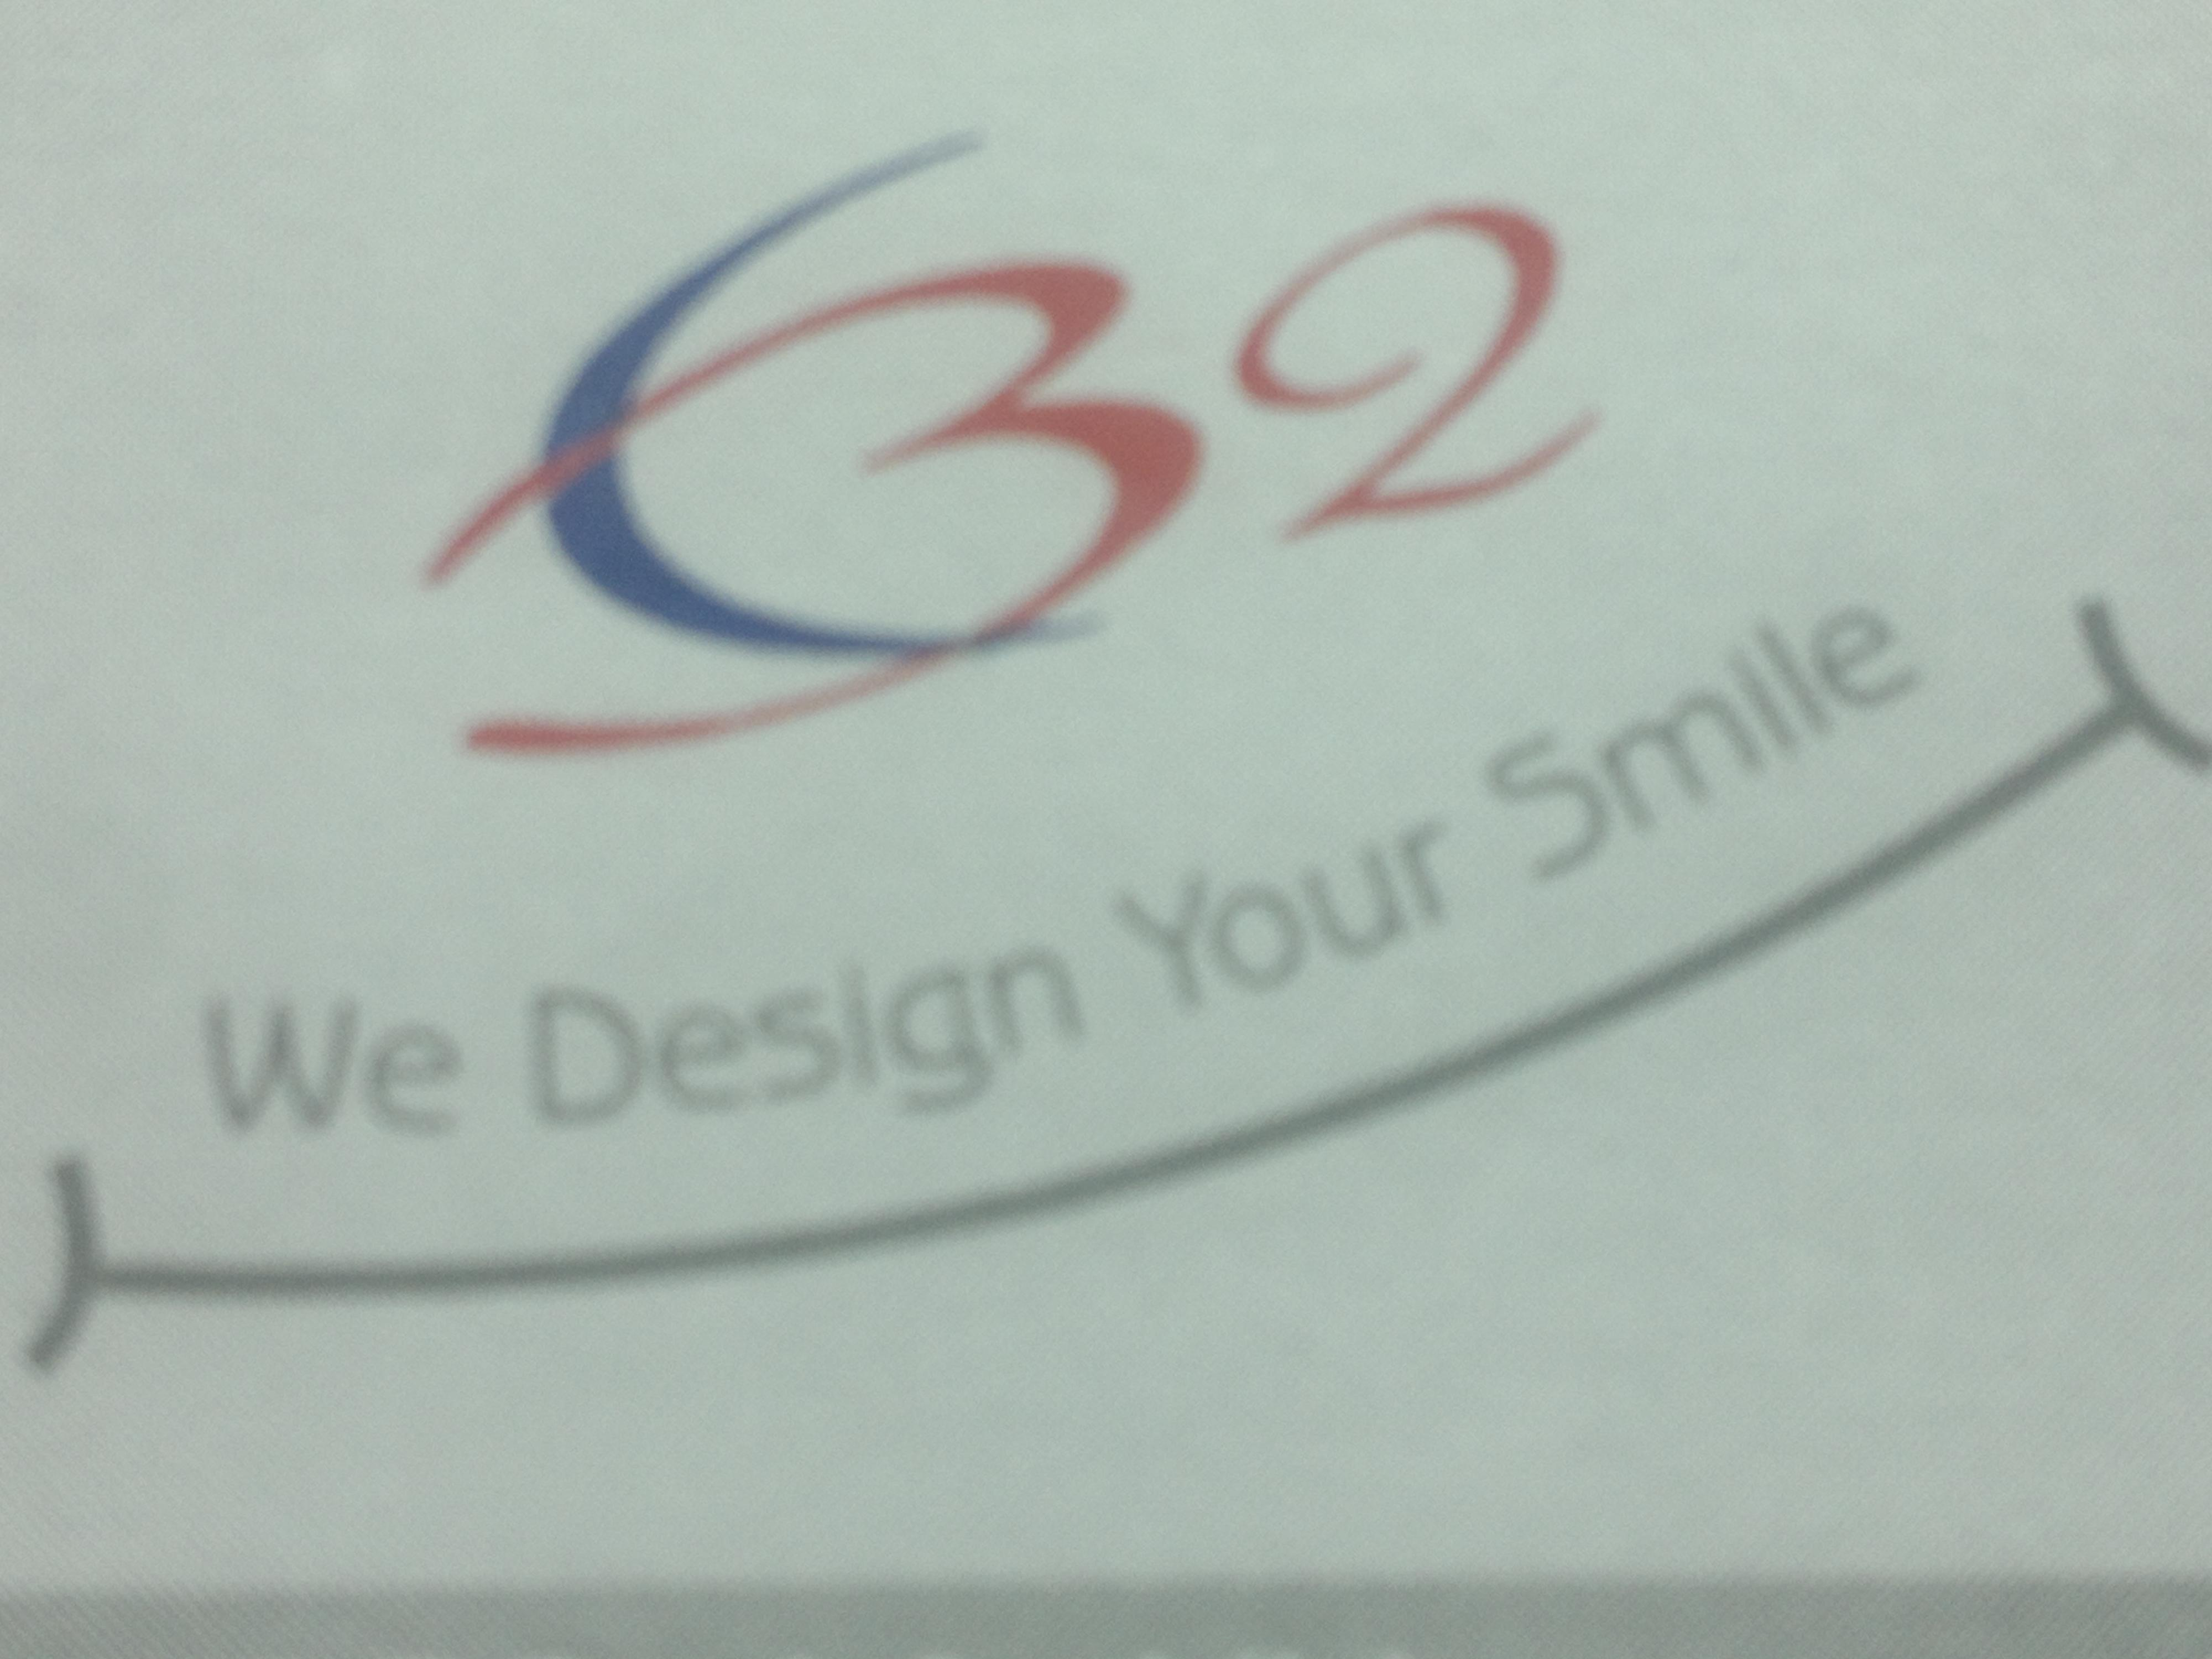 Cure 32 Multispeciality Dental Clinic